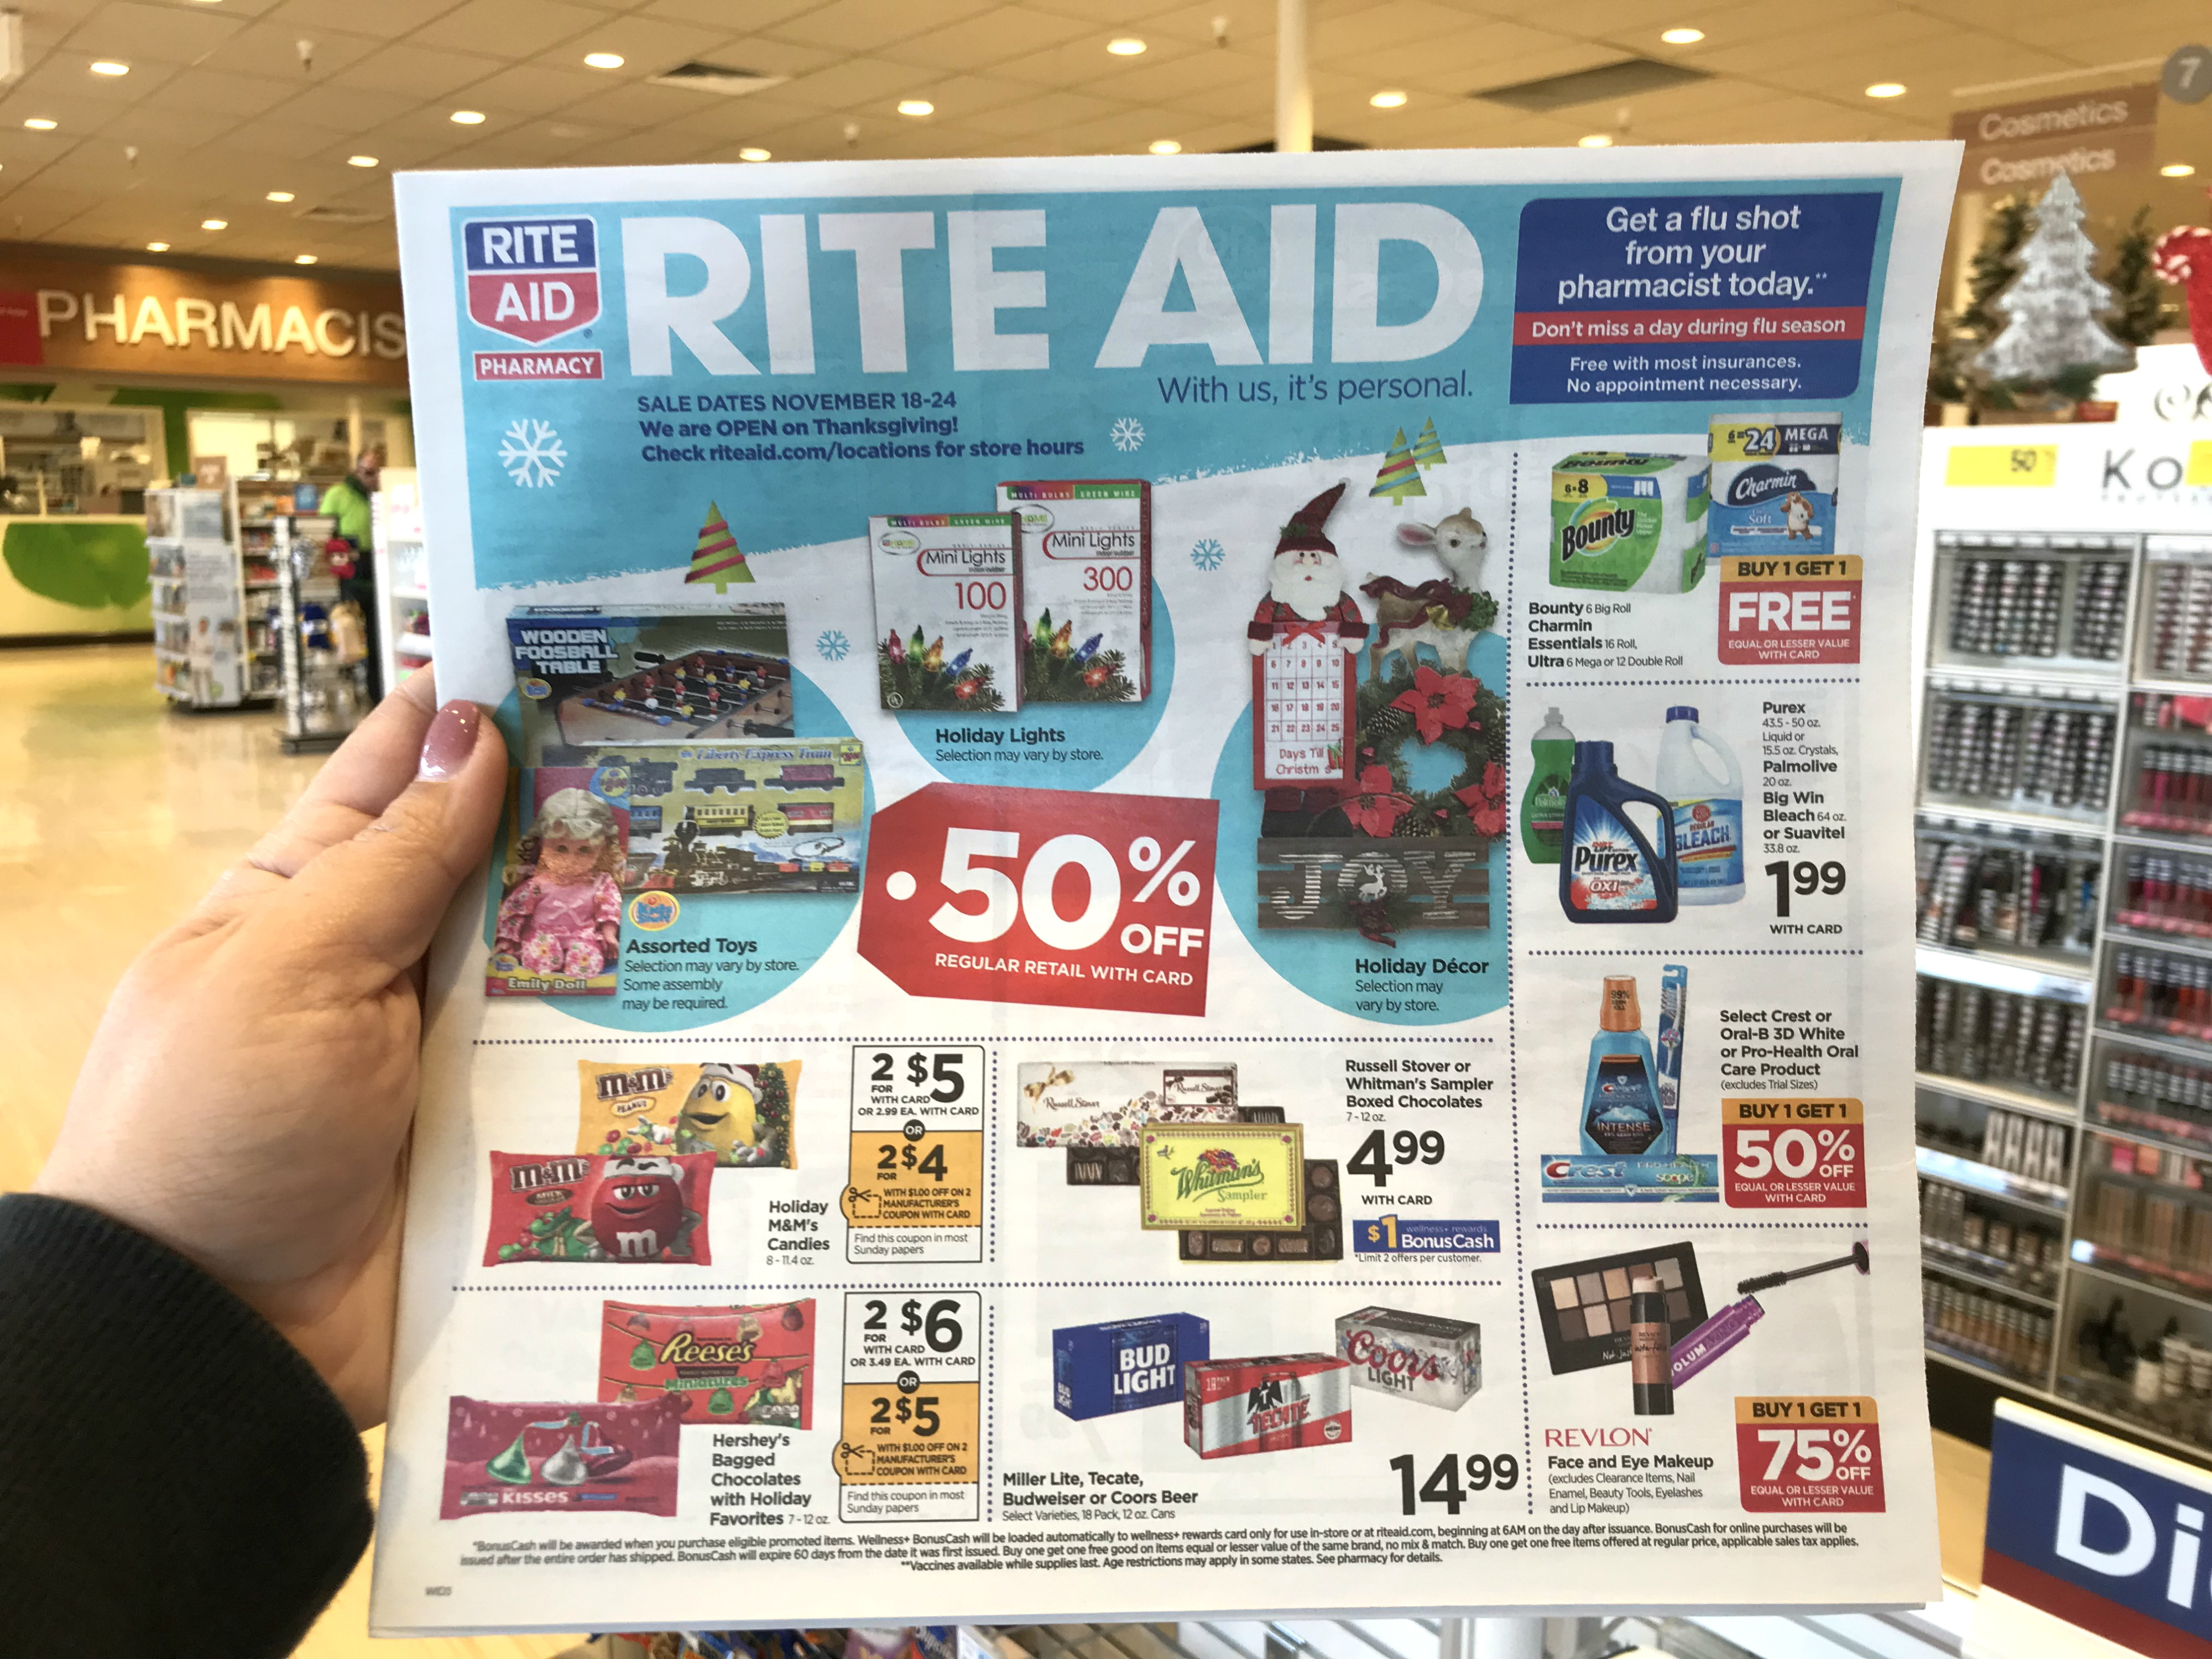 Rite Aid Coupons - The Krazy Coupon Lady